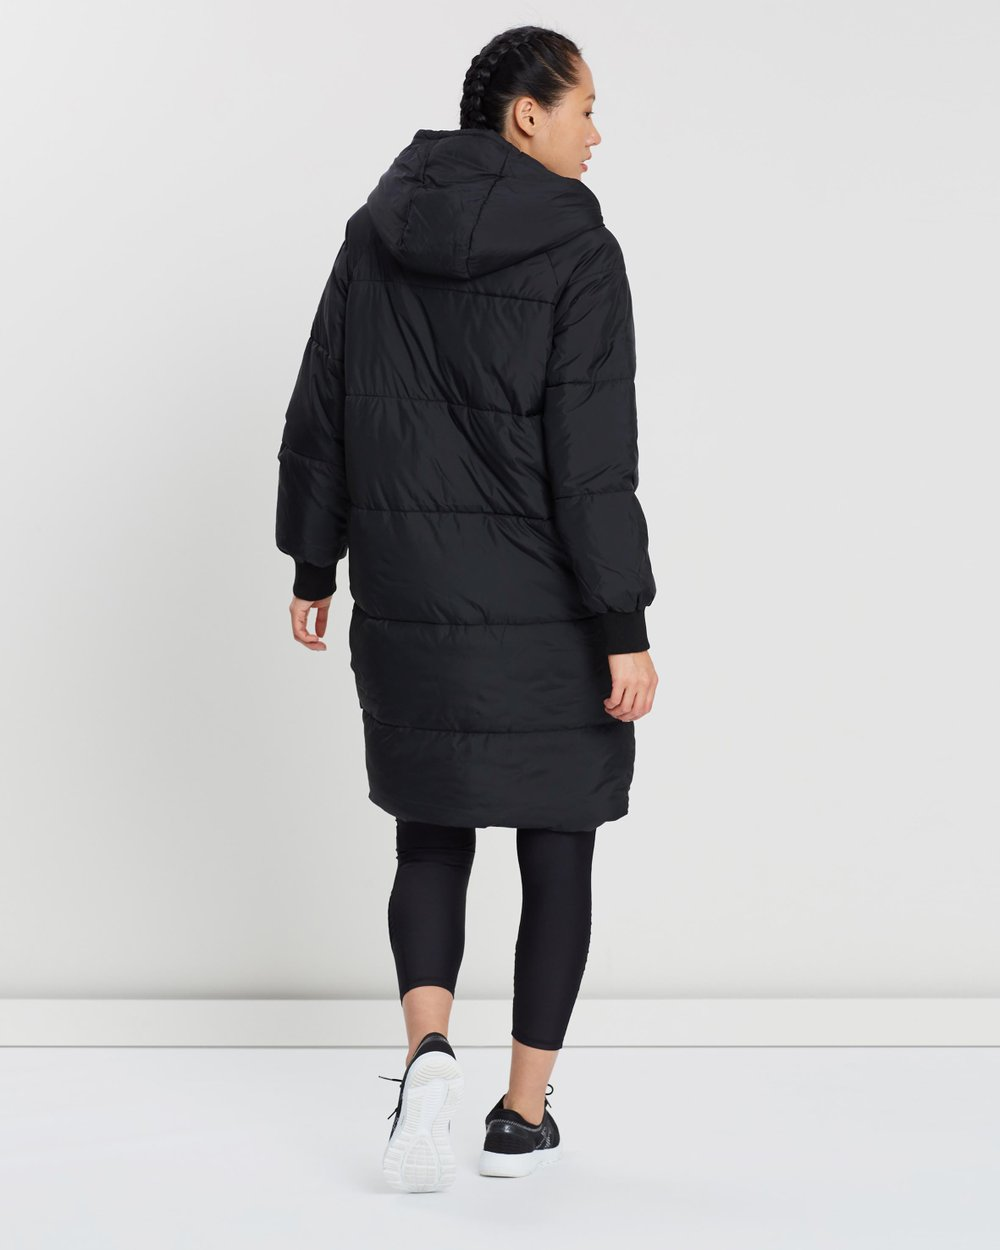 0dd24f8c99f Longline Active Puffer Jacket by Cotton On Body Active Online